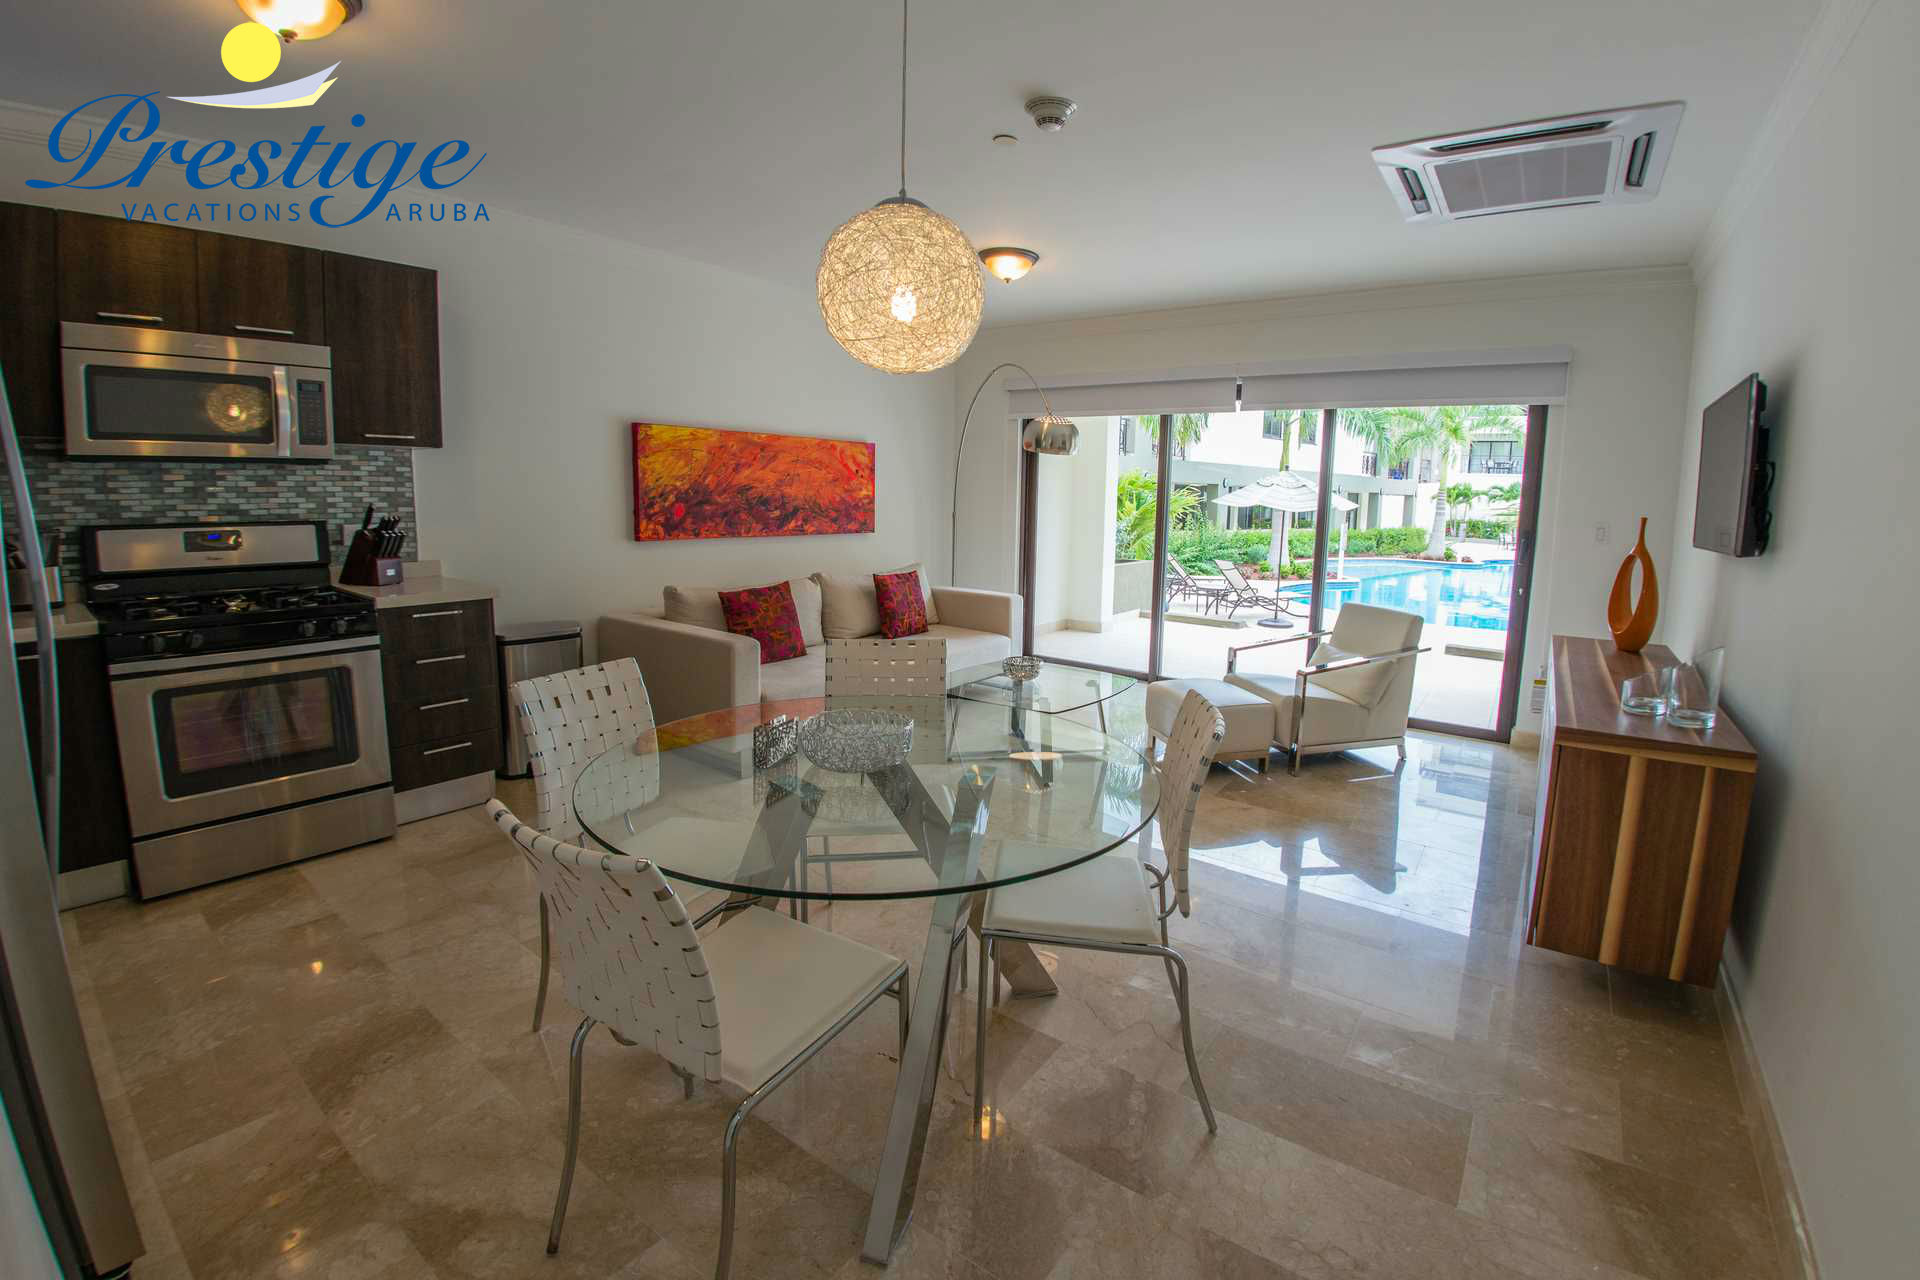 Welcome to the Lady Palm One-bedroom condo, your home away from home